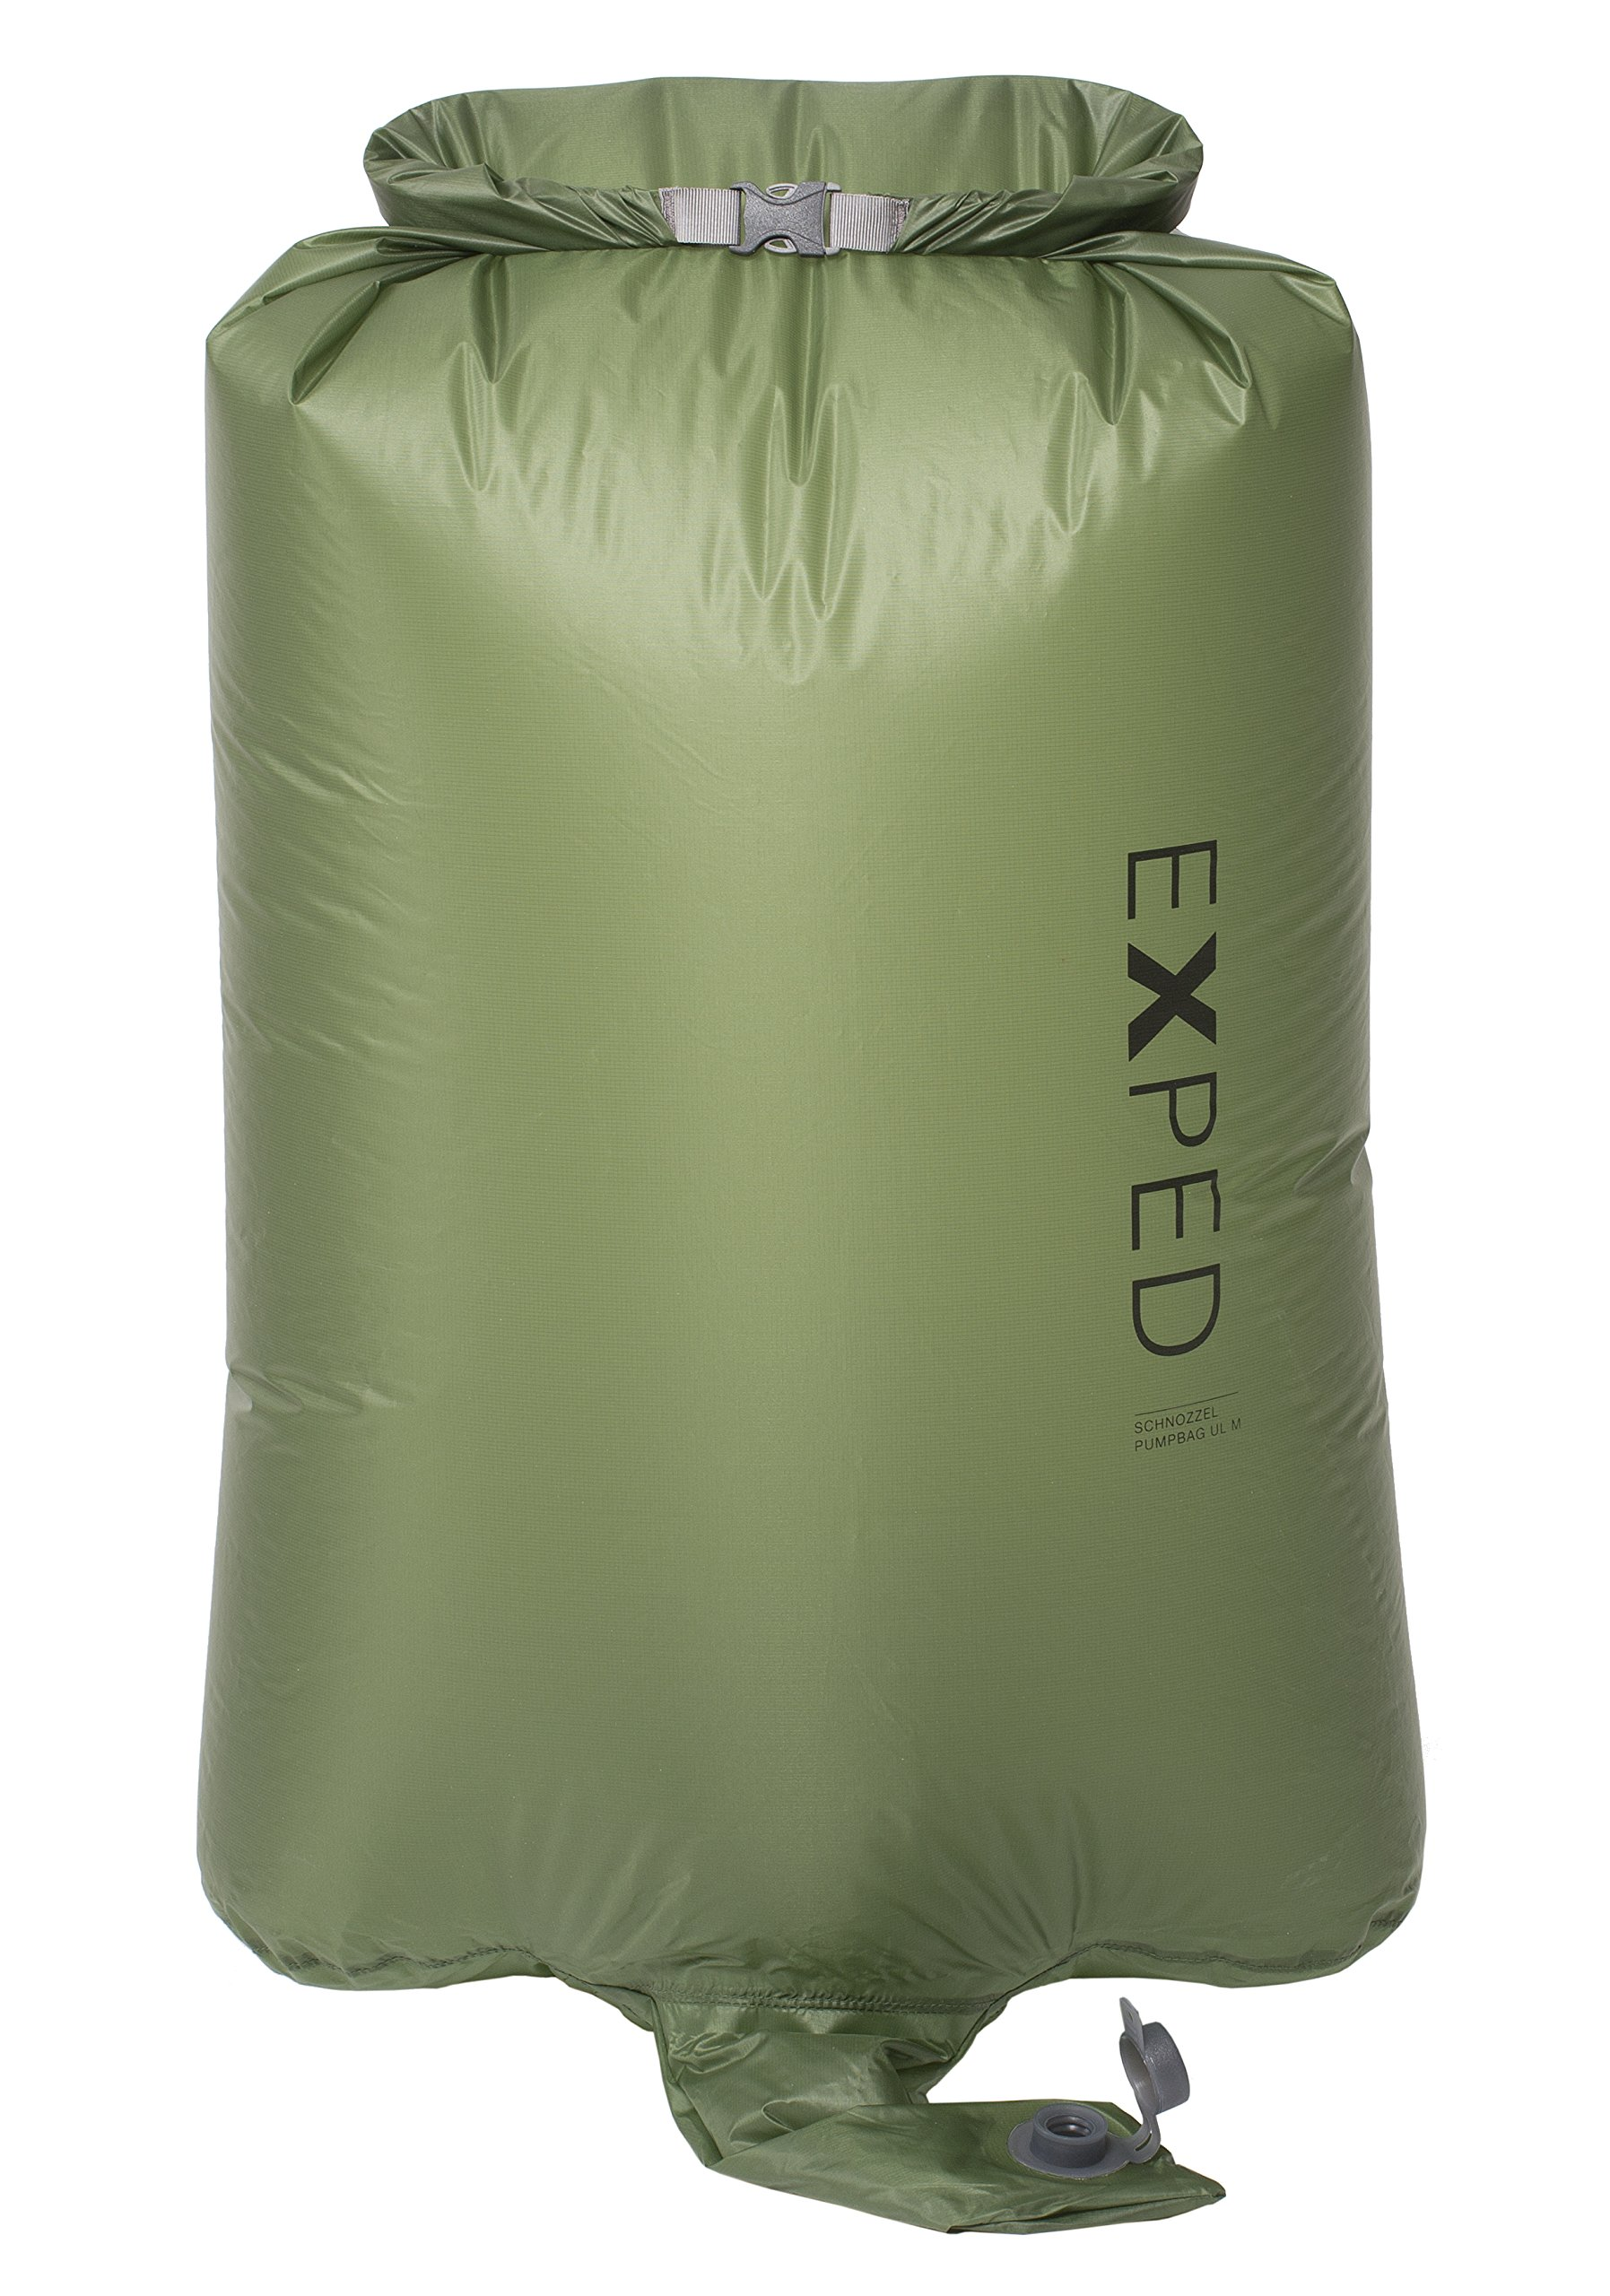 Exped Schnozzel Pumpbag UL, Green, Medium by Exped